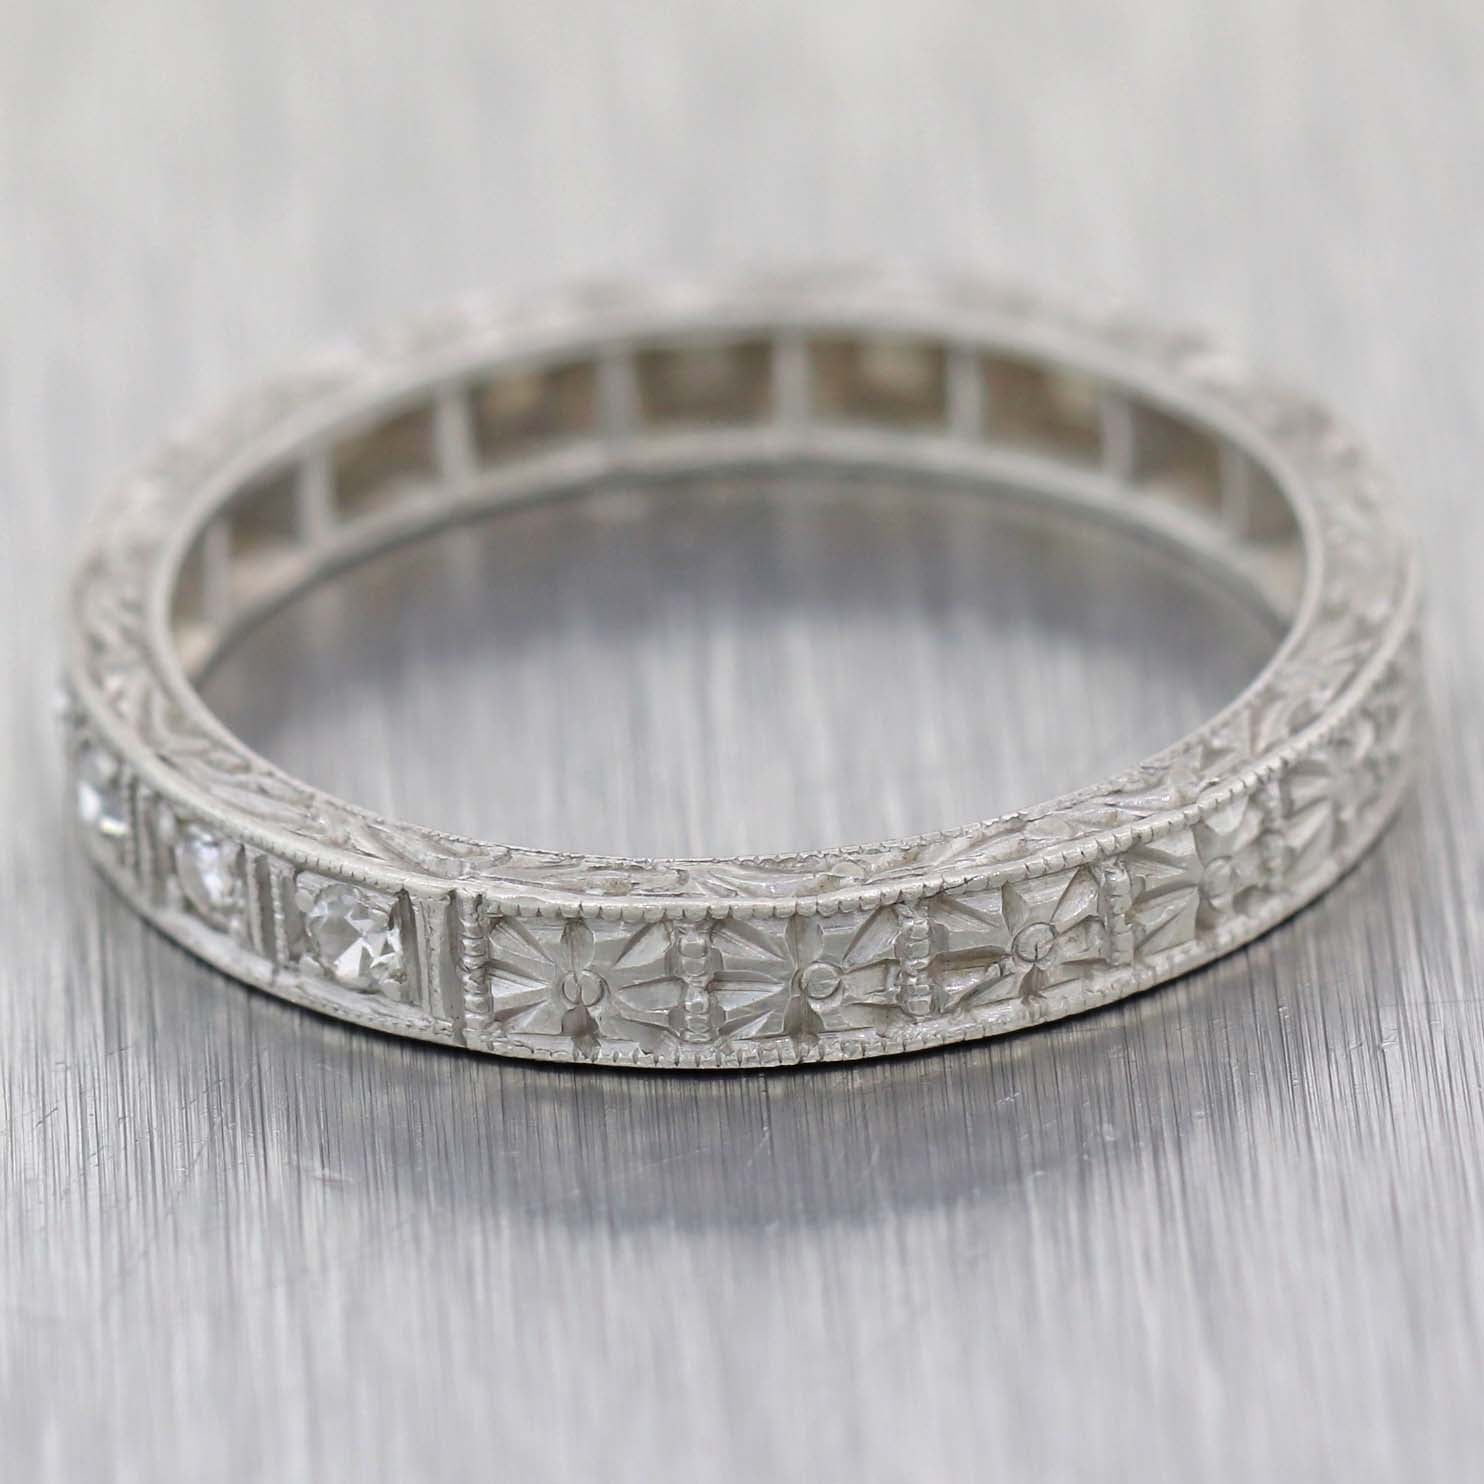 1920s Antique Art Deco Estate Platinum .10ctw Diamond 2mm Wedding Band Ring